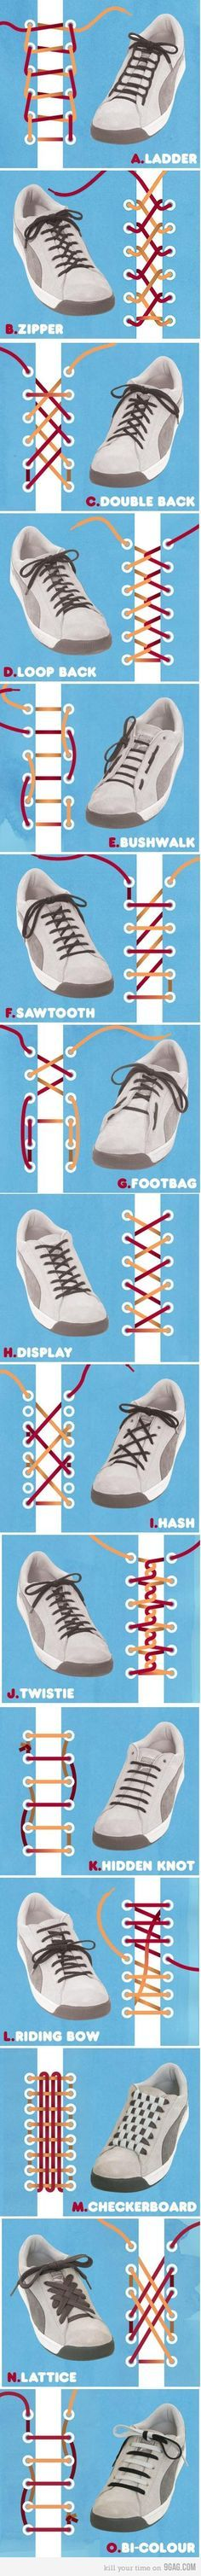 Shoe Lace Hack